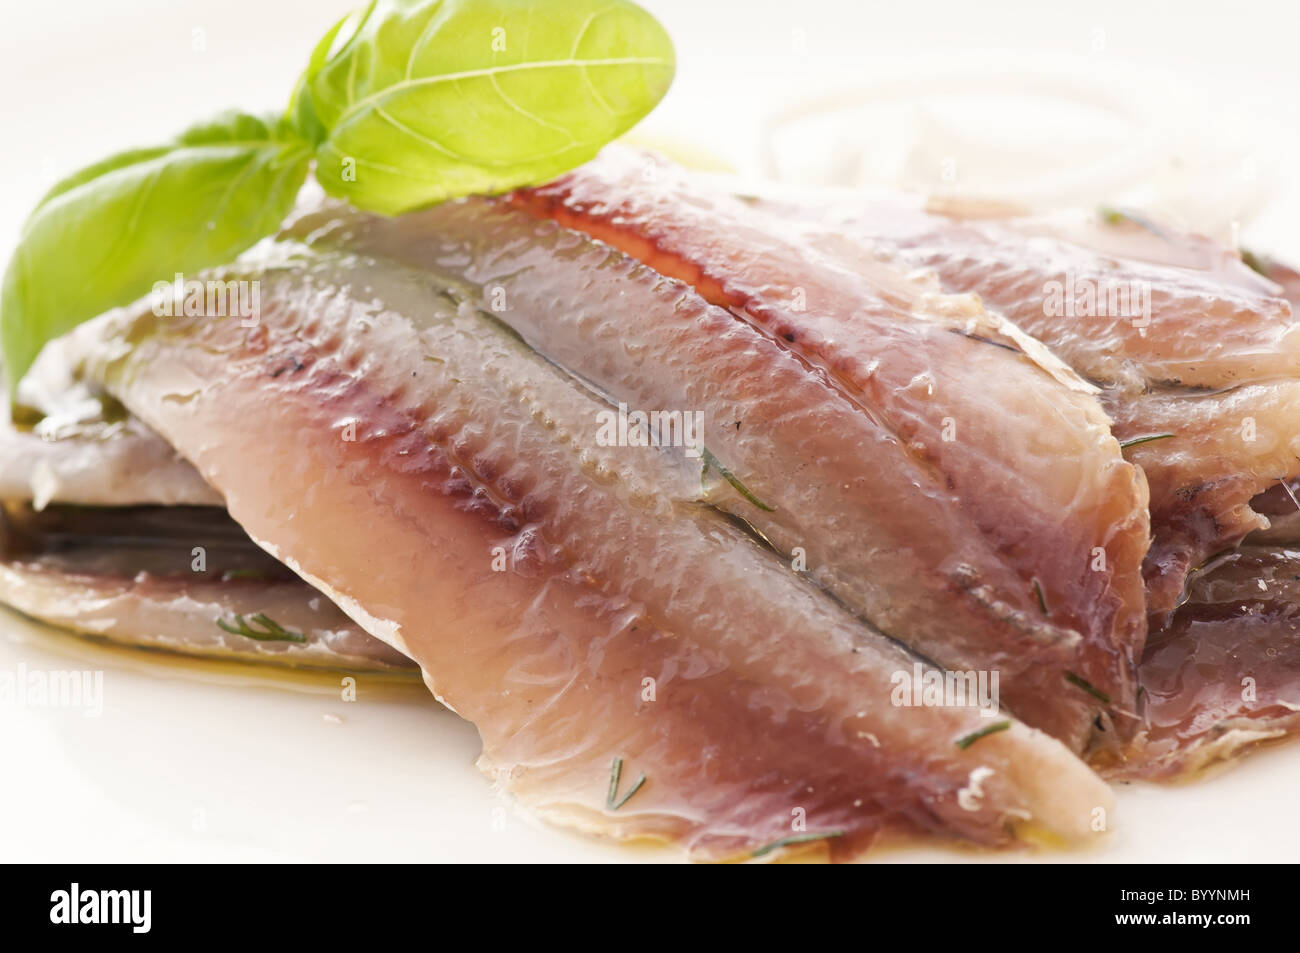 Marinated anchovies as closeup on white background - Stock Image